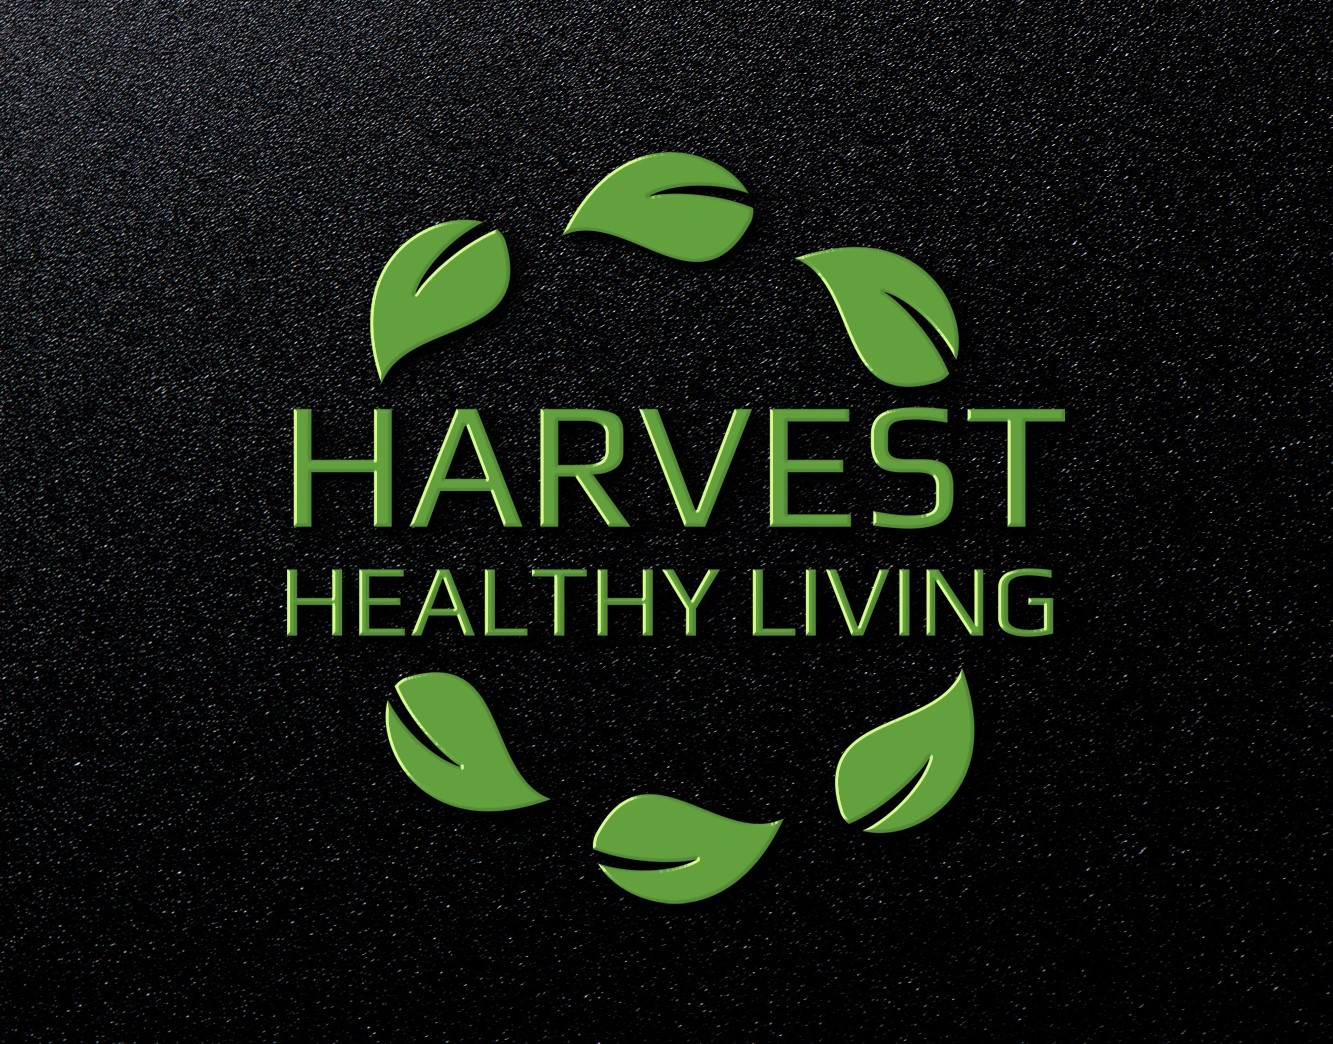 Harvest Healthy Living